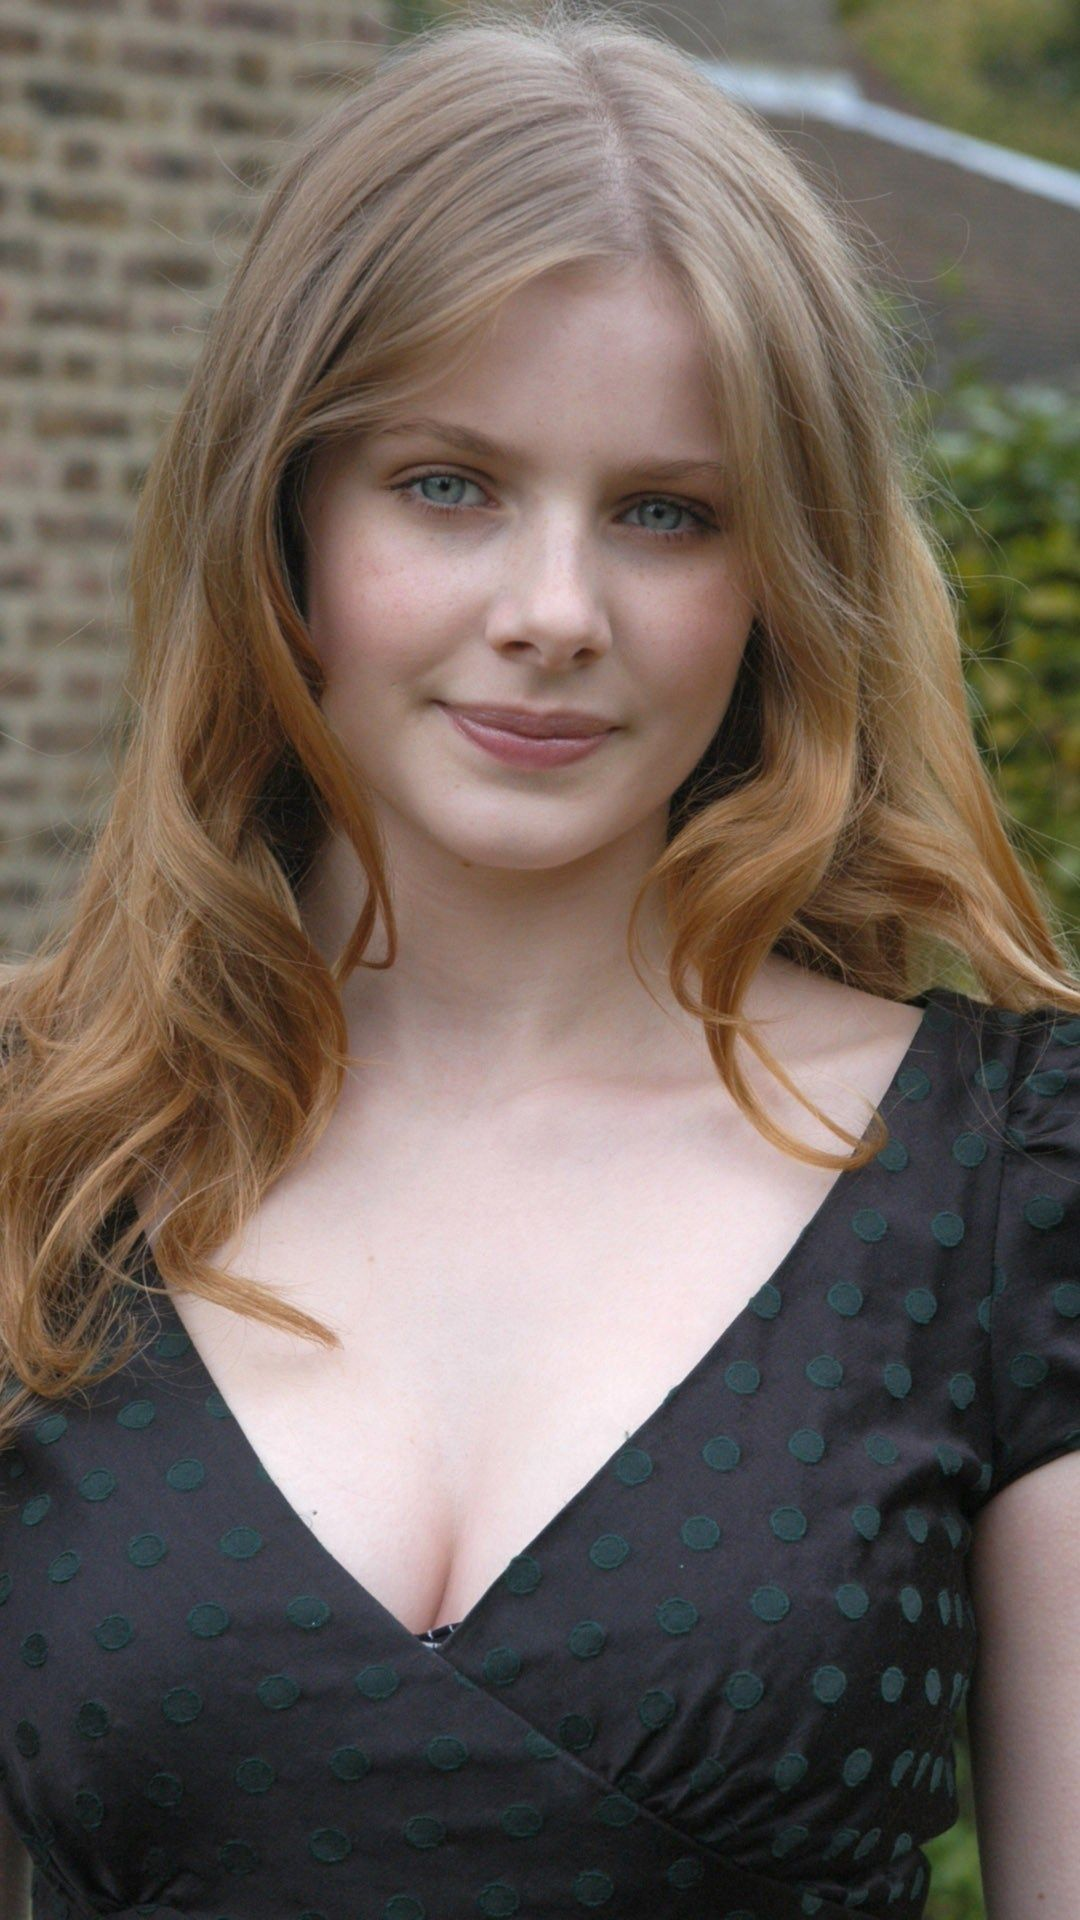 Rachel Hurd-Wood (born 1990) Rachel Hurd-Wood (born 1990) new pictures